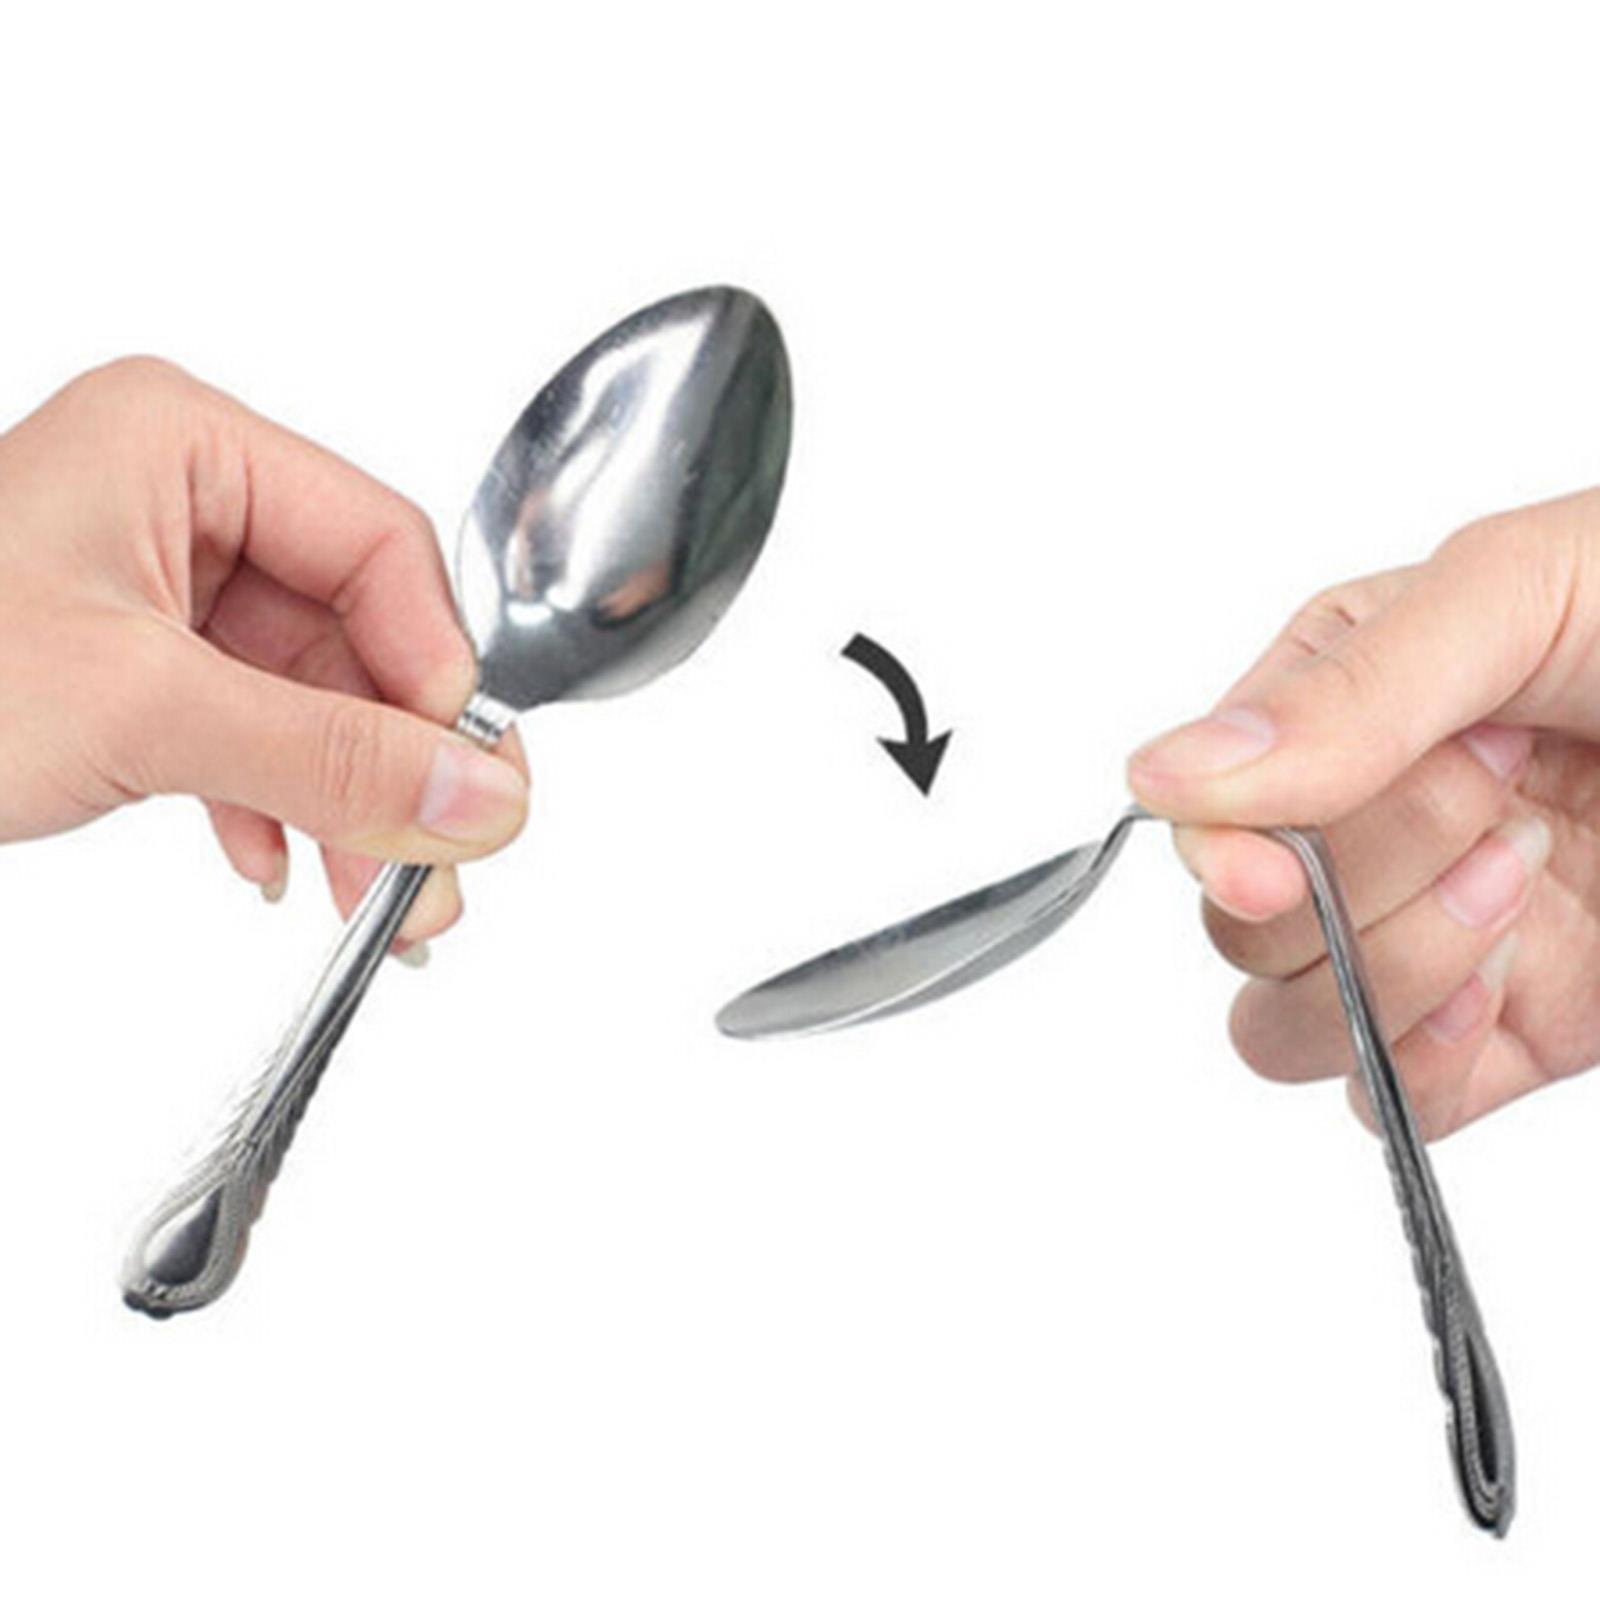 Peradix Novelty Mind Bending Spoon Close Up Magic Trick Street Performance Show Kit Easy Use Repeatedly High Quality